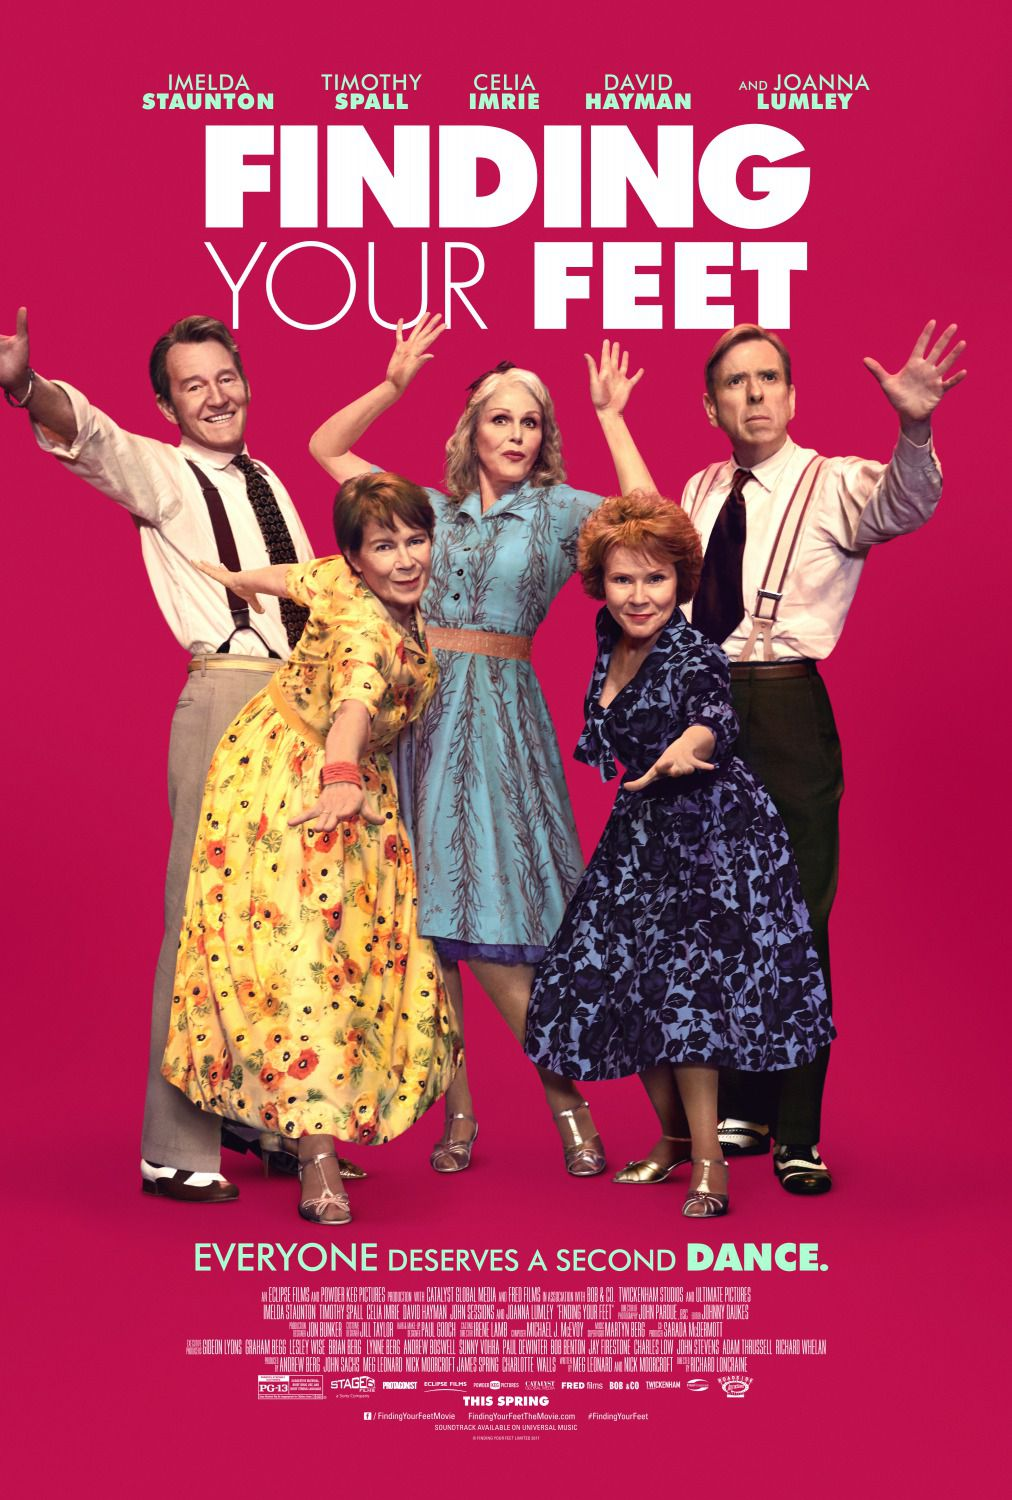 Finding Your Feet - Imelda Staunton, Timothy Spall, Celia Imrie, David Hayman, Joanna Lumley - Everyone deserves a second dance - film poster